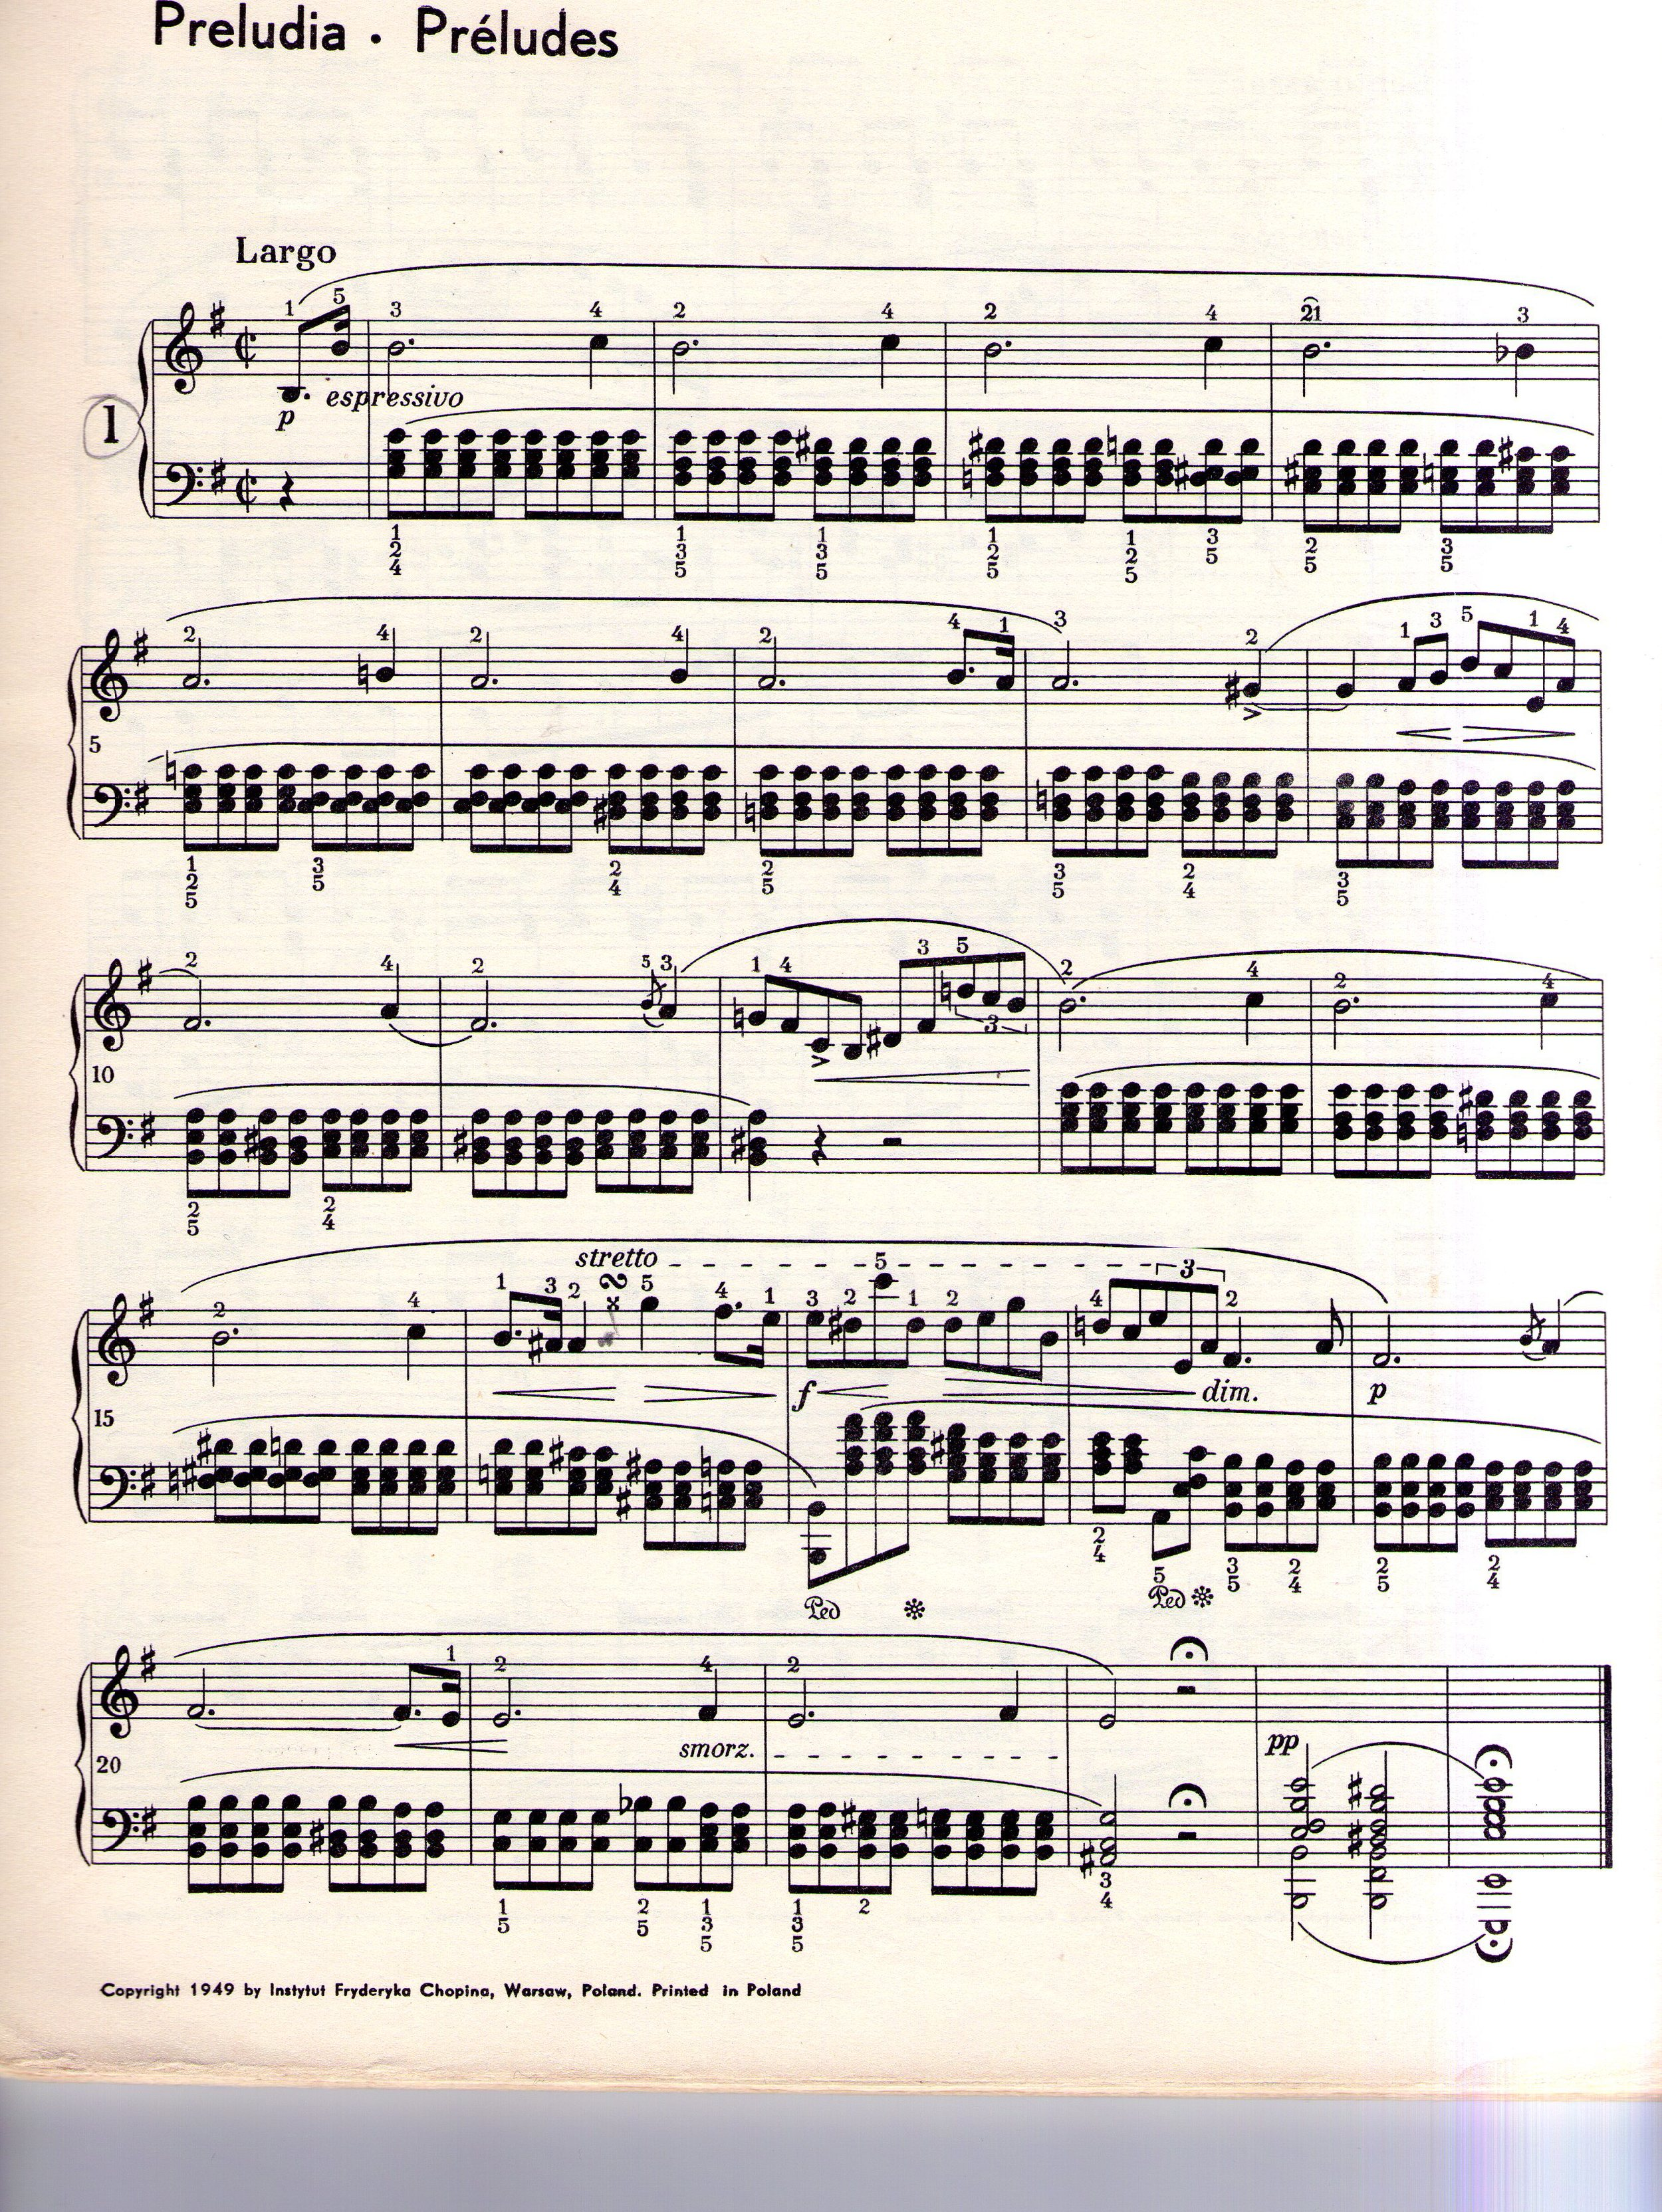 Prelude_Mi_Mineur_Chopin_partitions.jpg